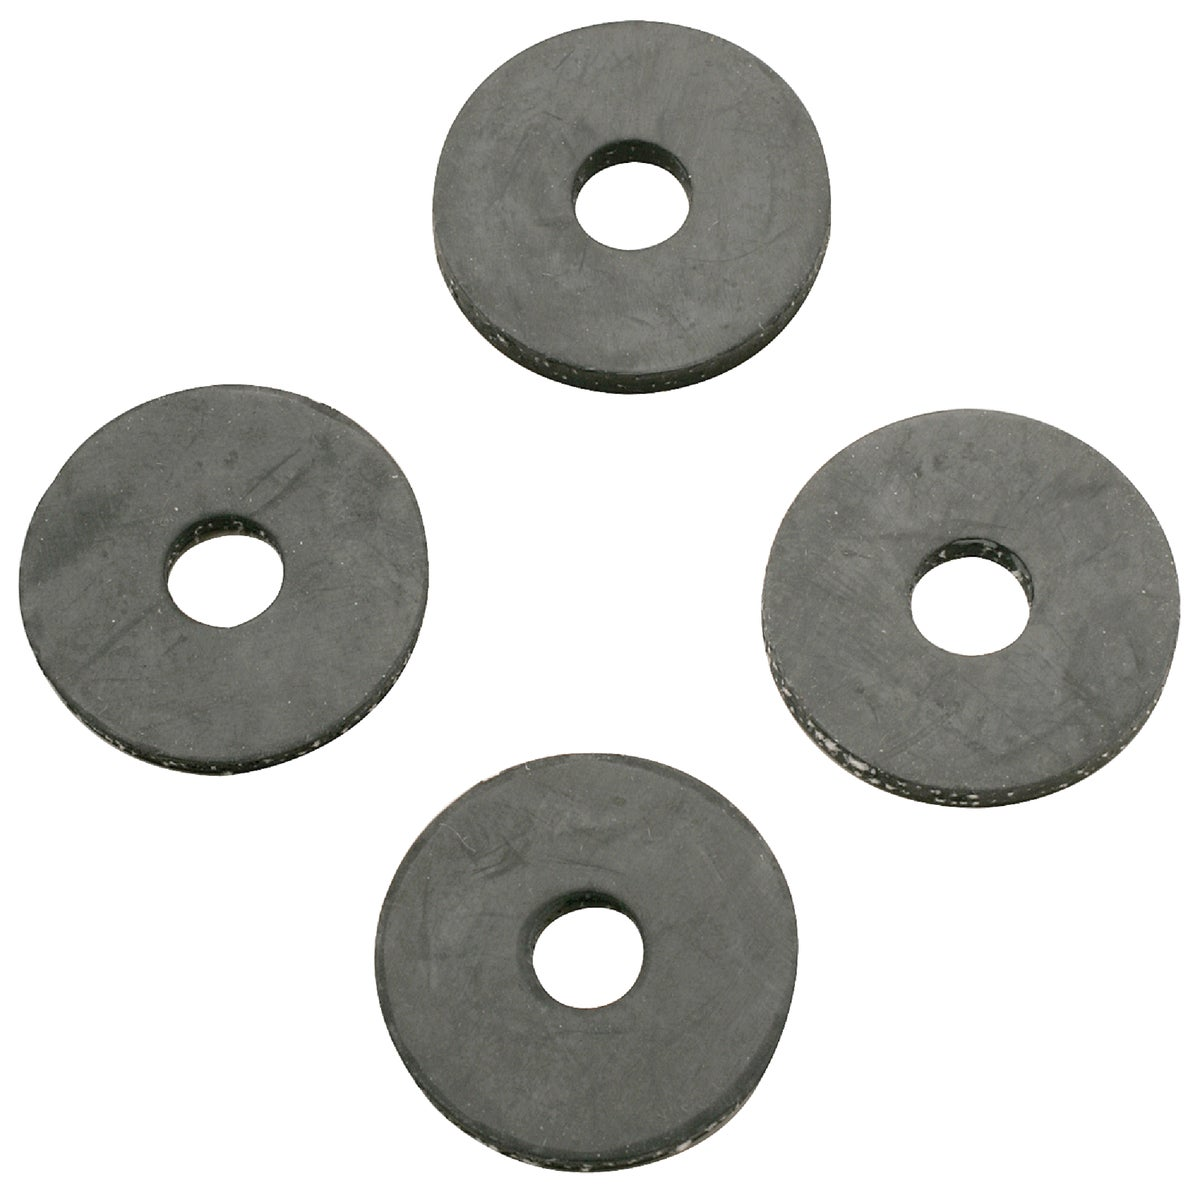 4PK TANK/BOWL WASHER - 411842 by Plumb Pak/keeney Mfg